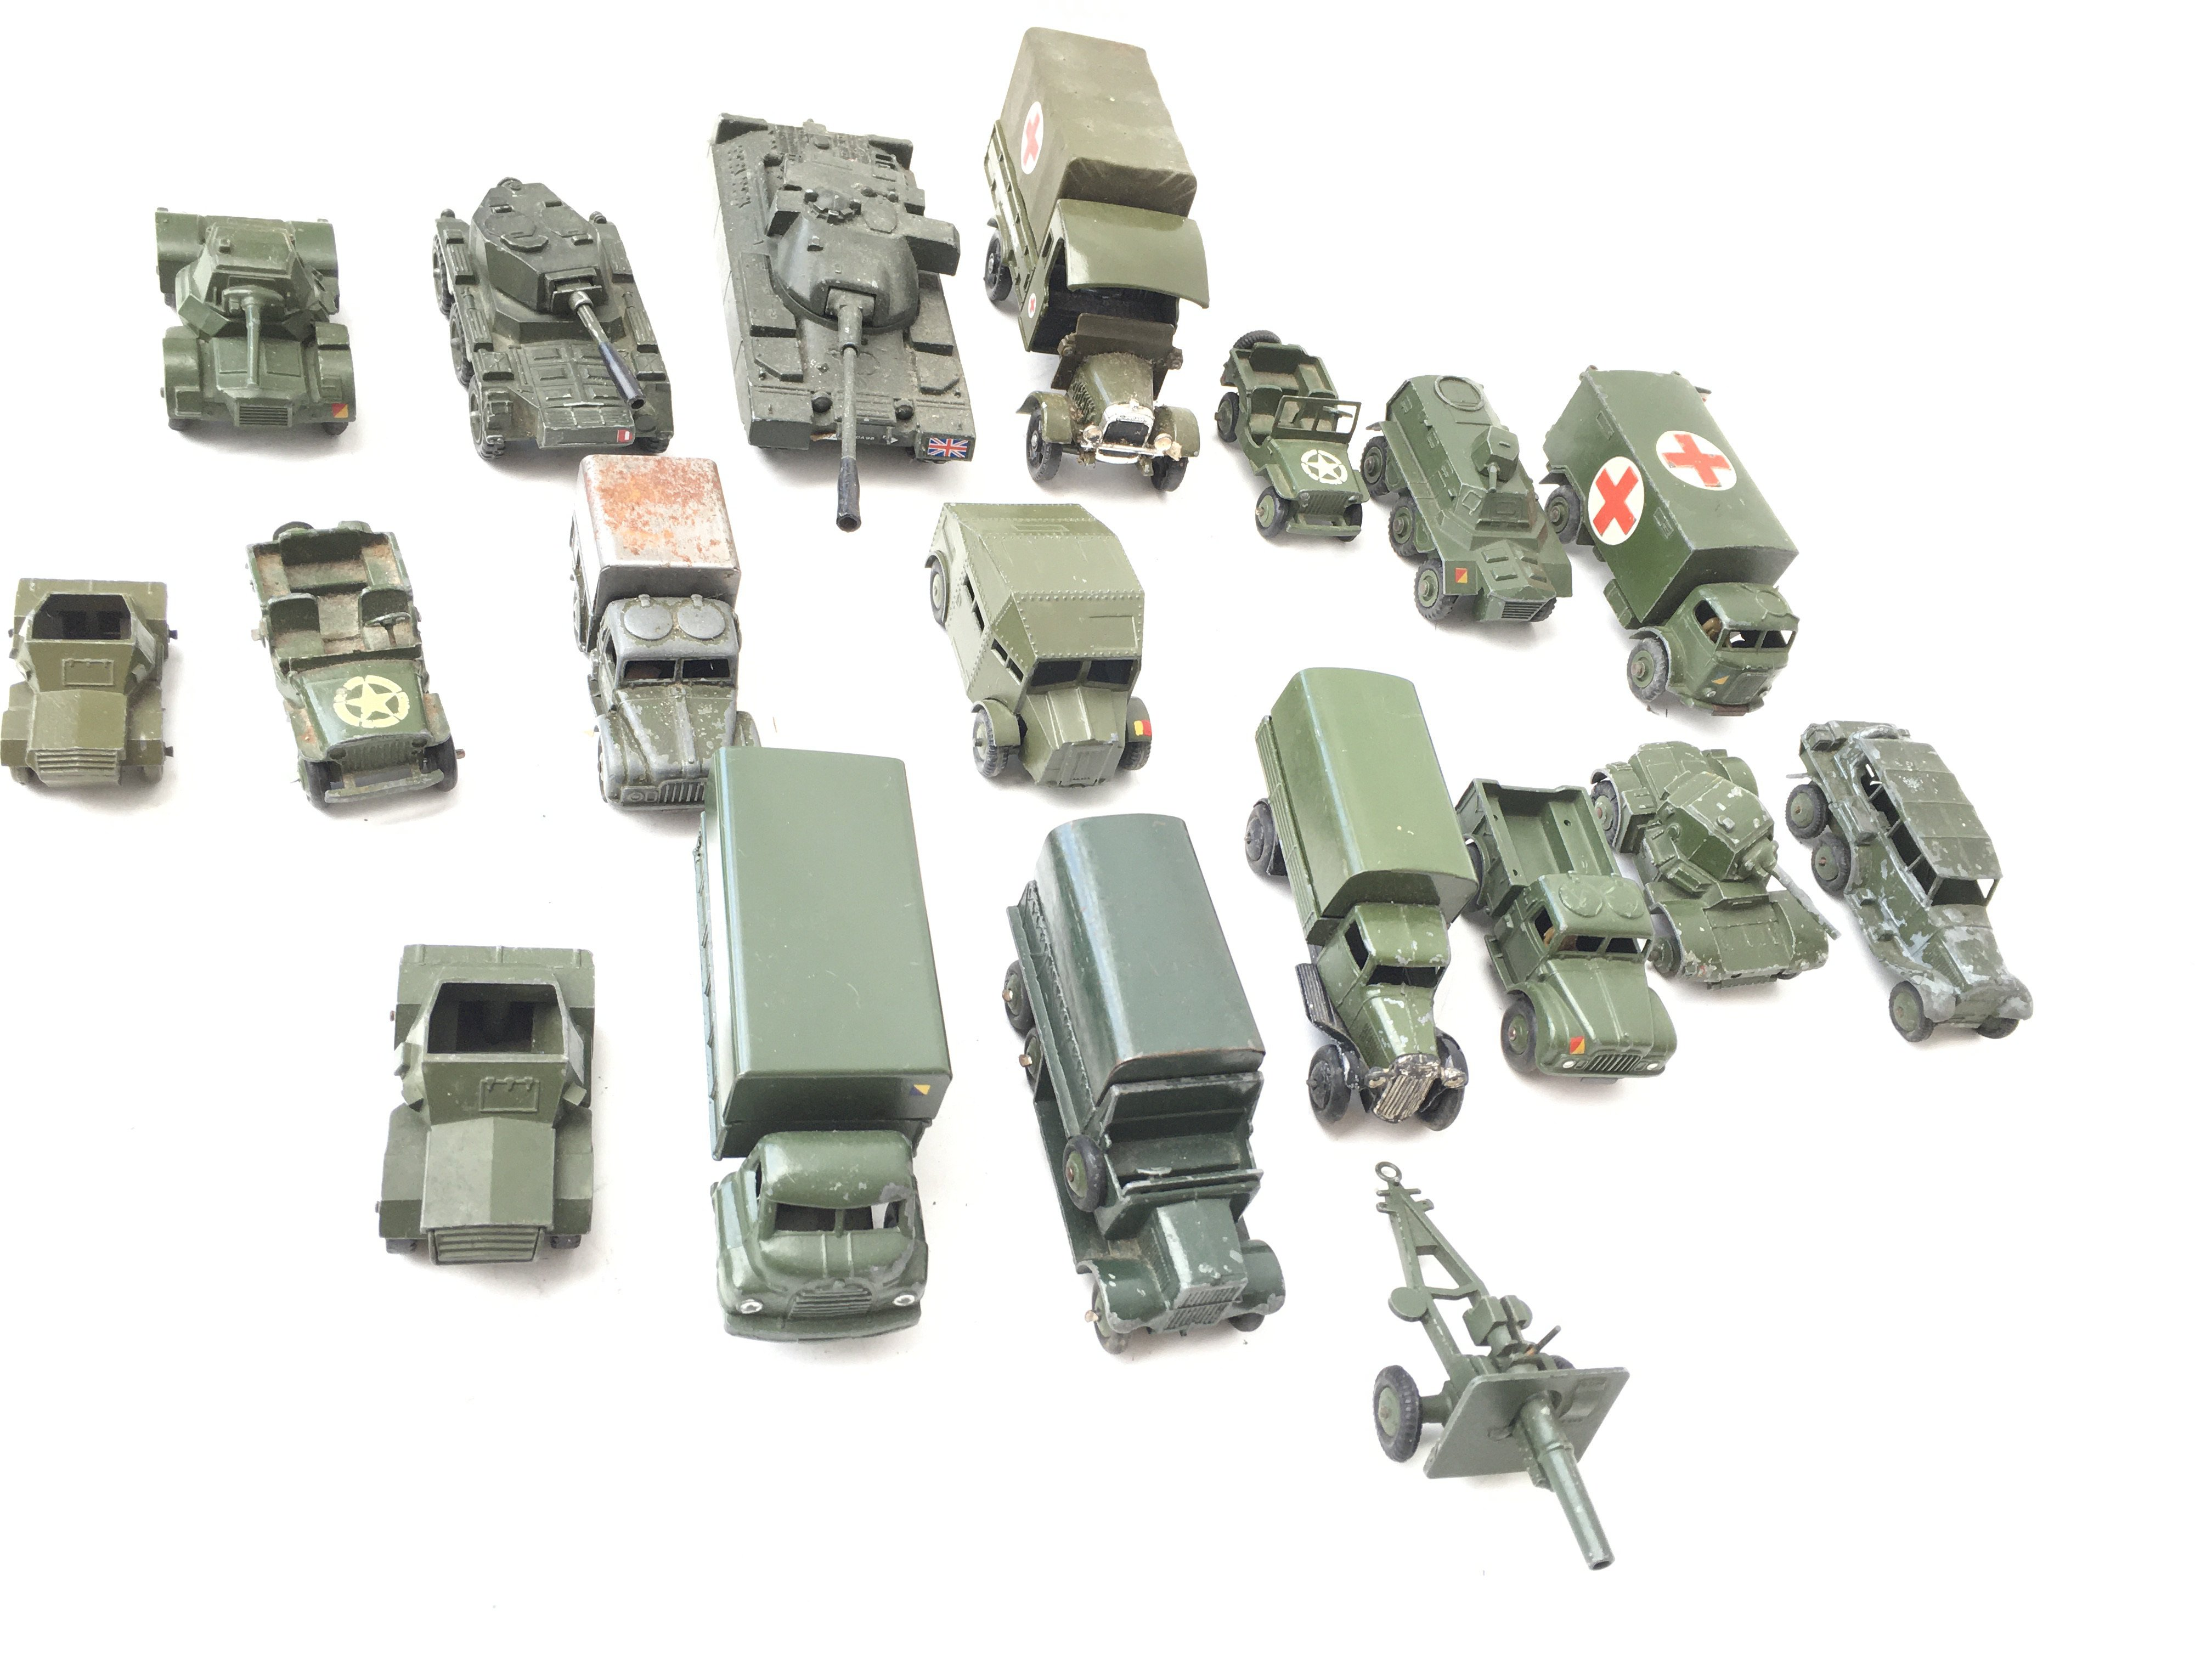 A Collection of Military Die Cast Vehicles includi - Image 2 of 3